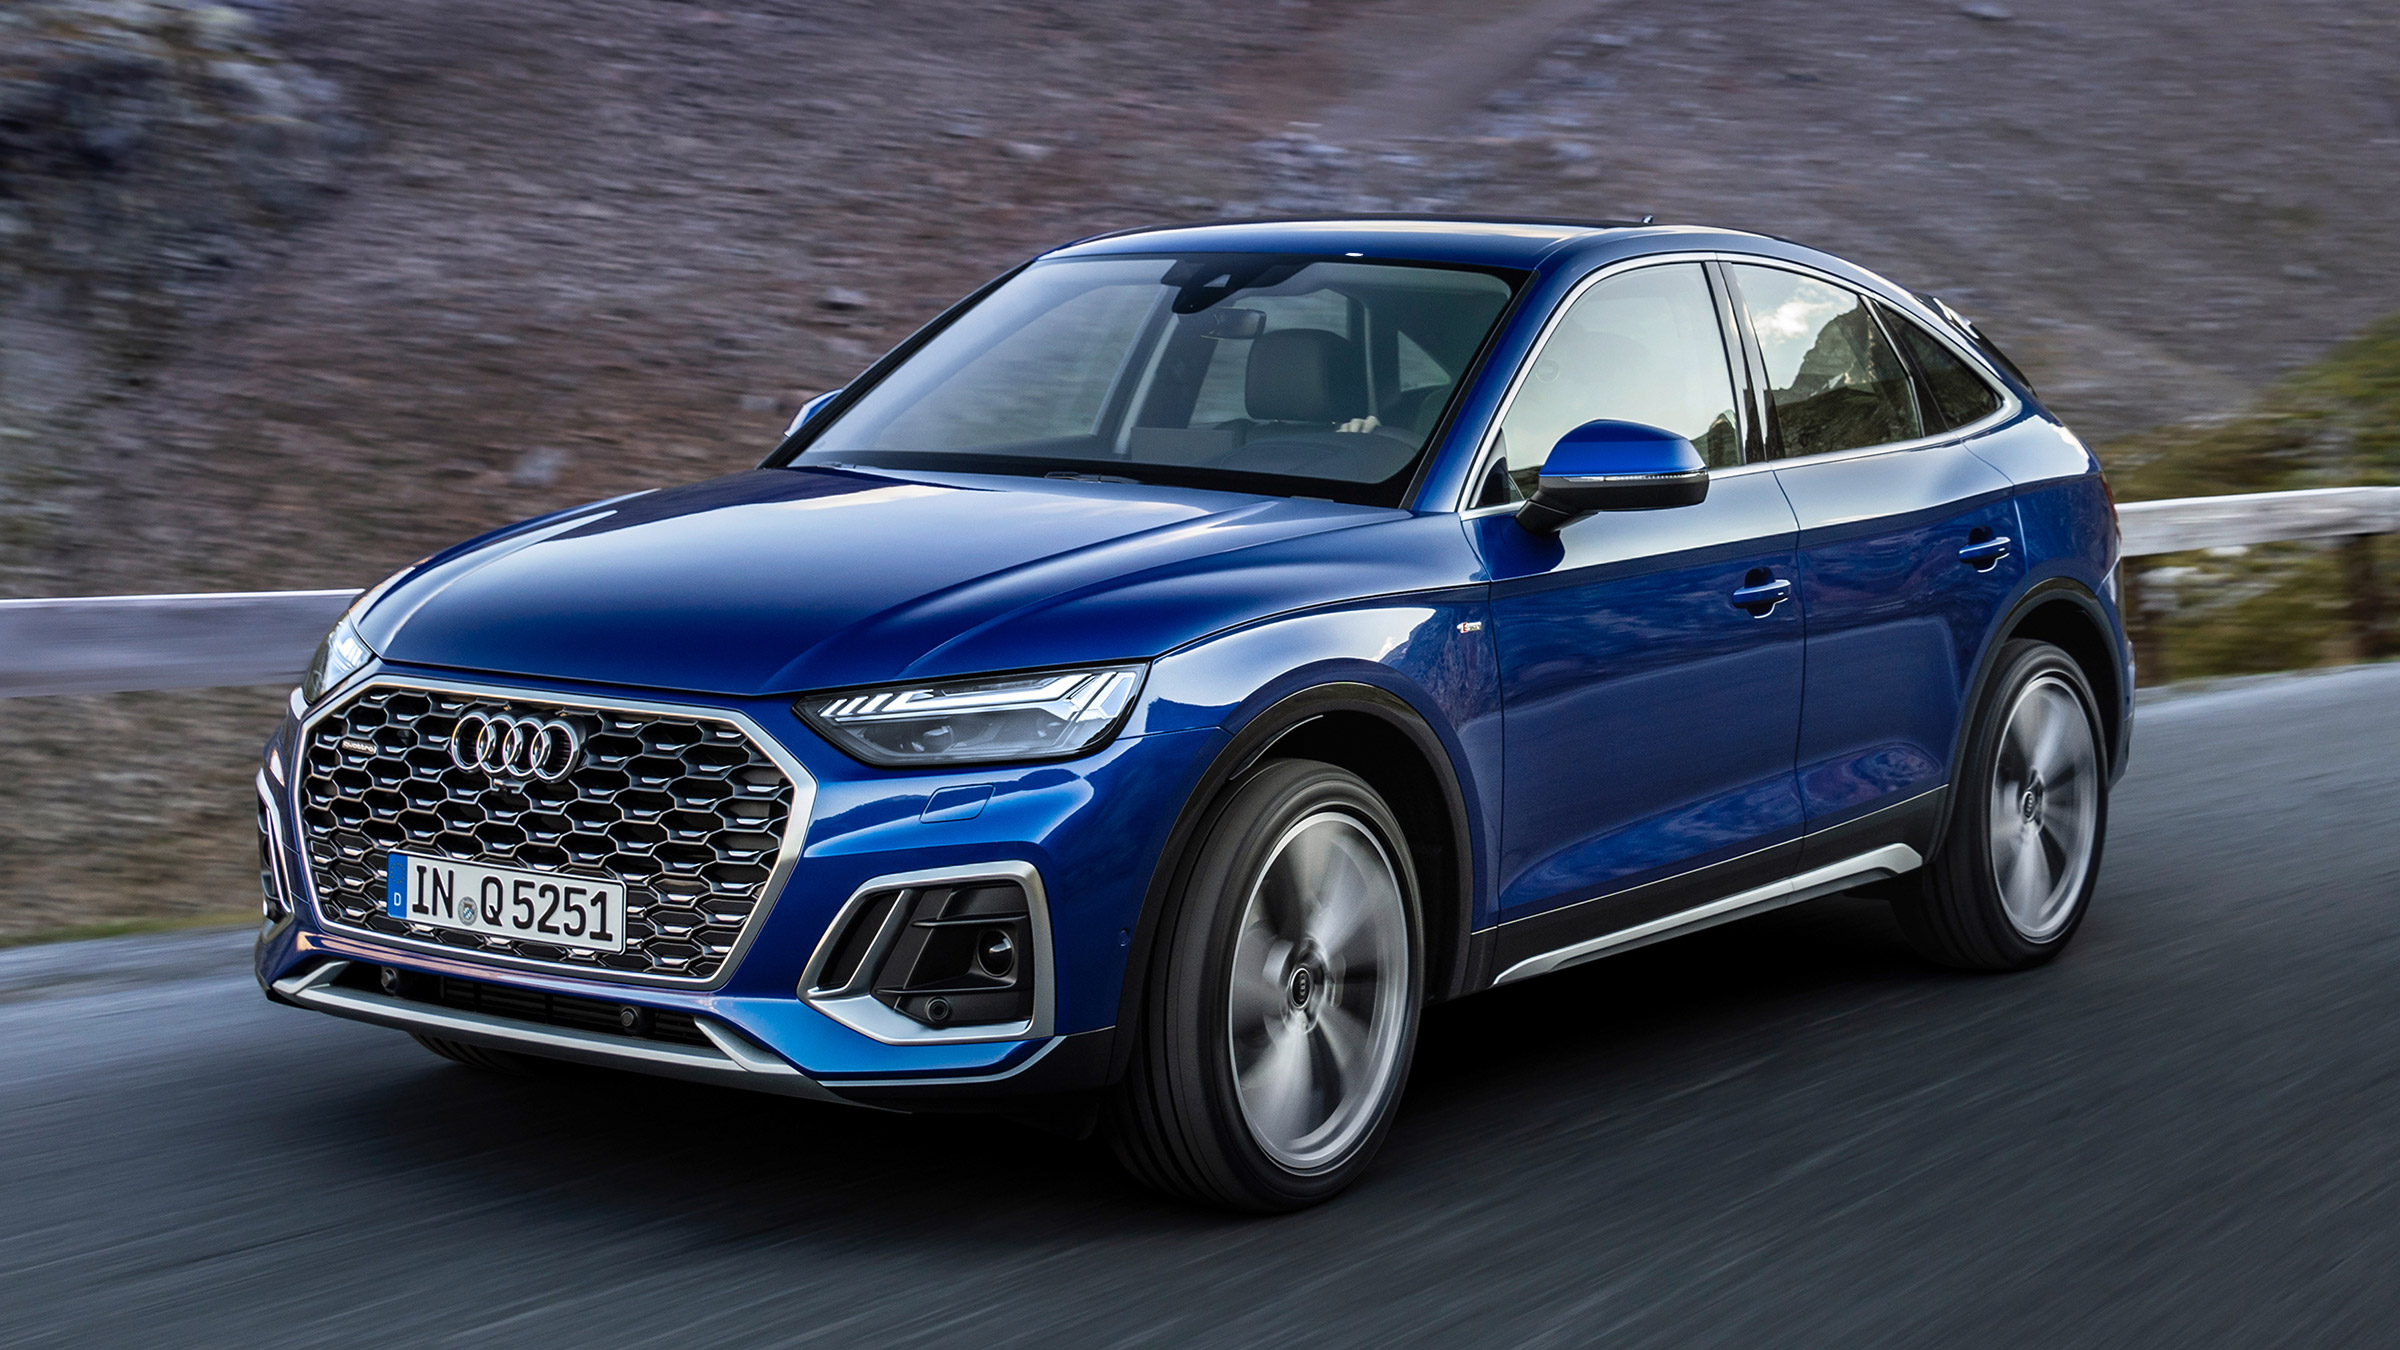 New 2021 Audi Q5 Sportback coupe-SUV turns on the style ...